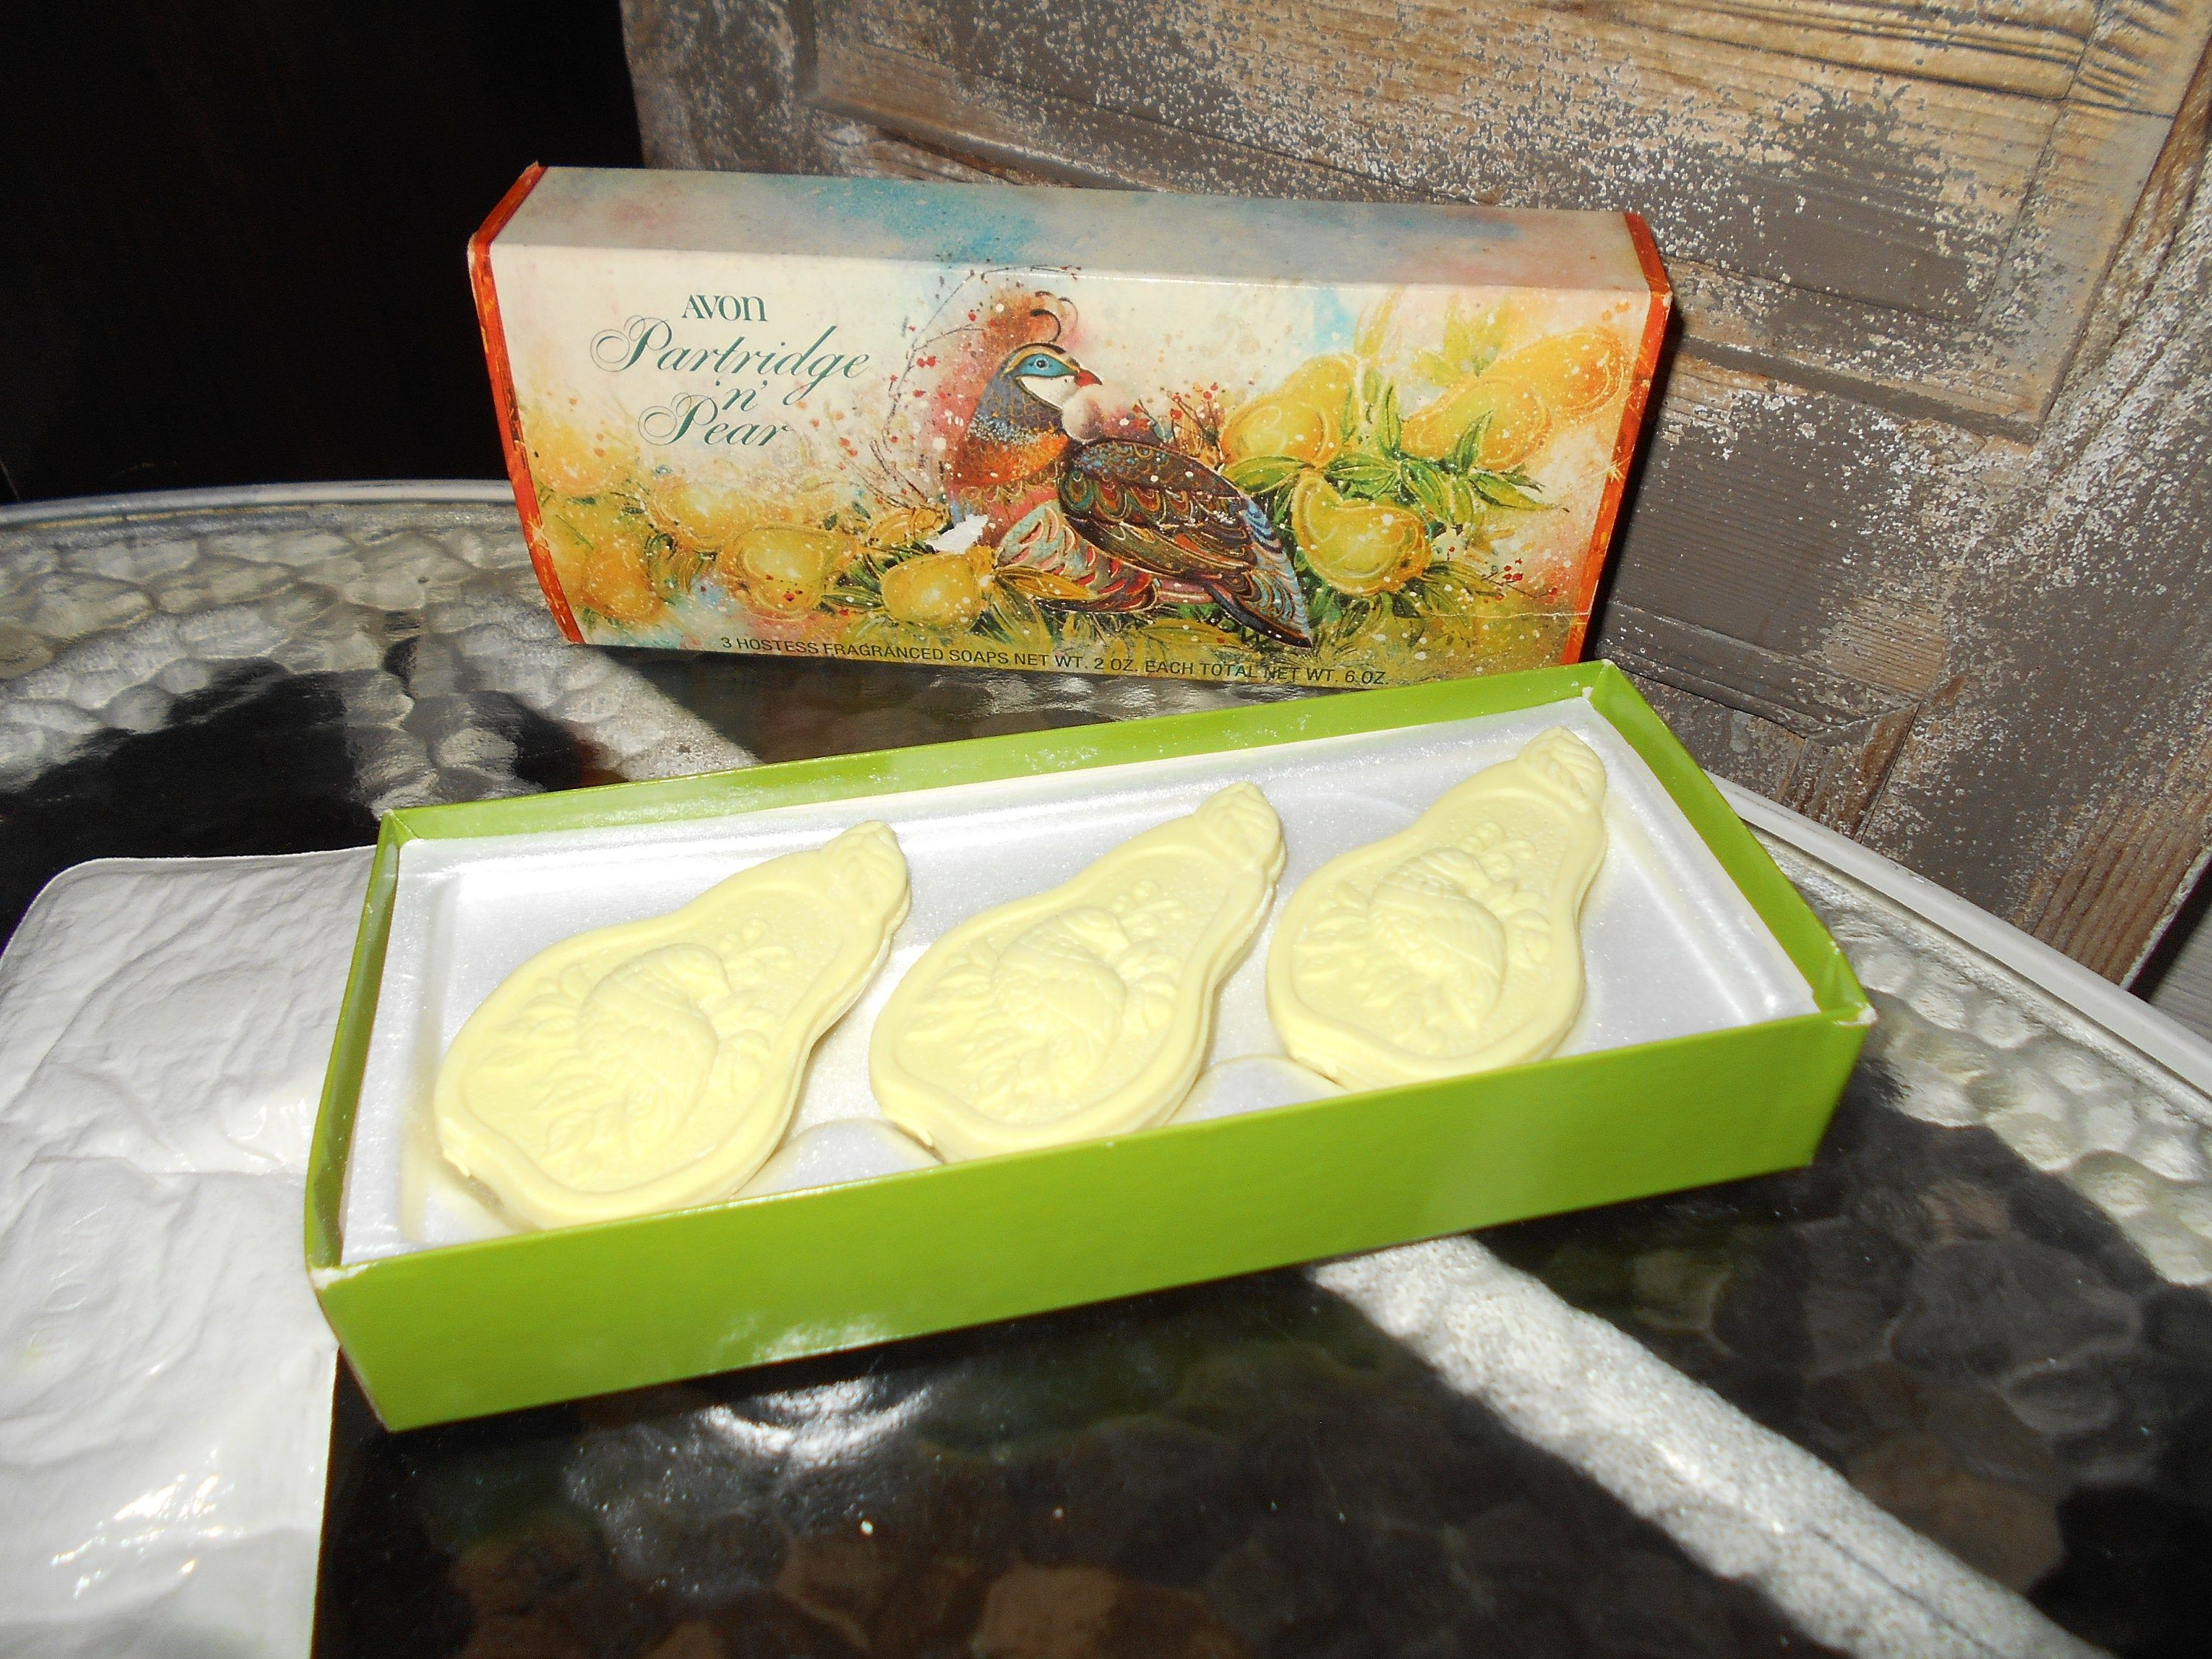 Vintage Avon Soaps Partridge And Pear 3 Hostess Soaps 2 Etsy Vintage Avon Soap Gift Vintage